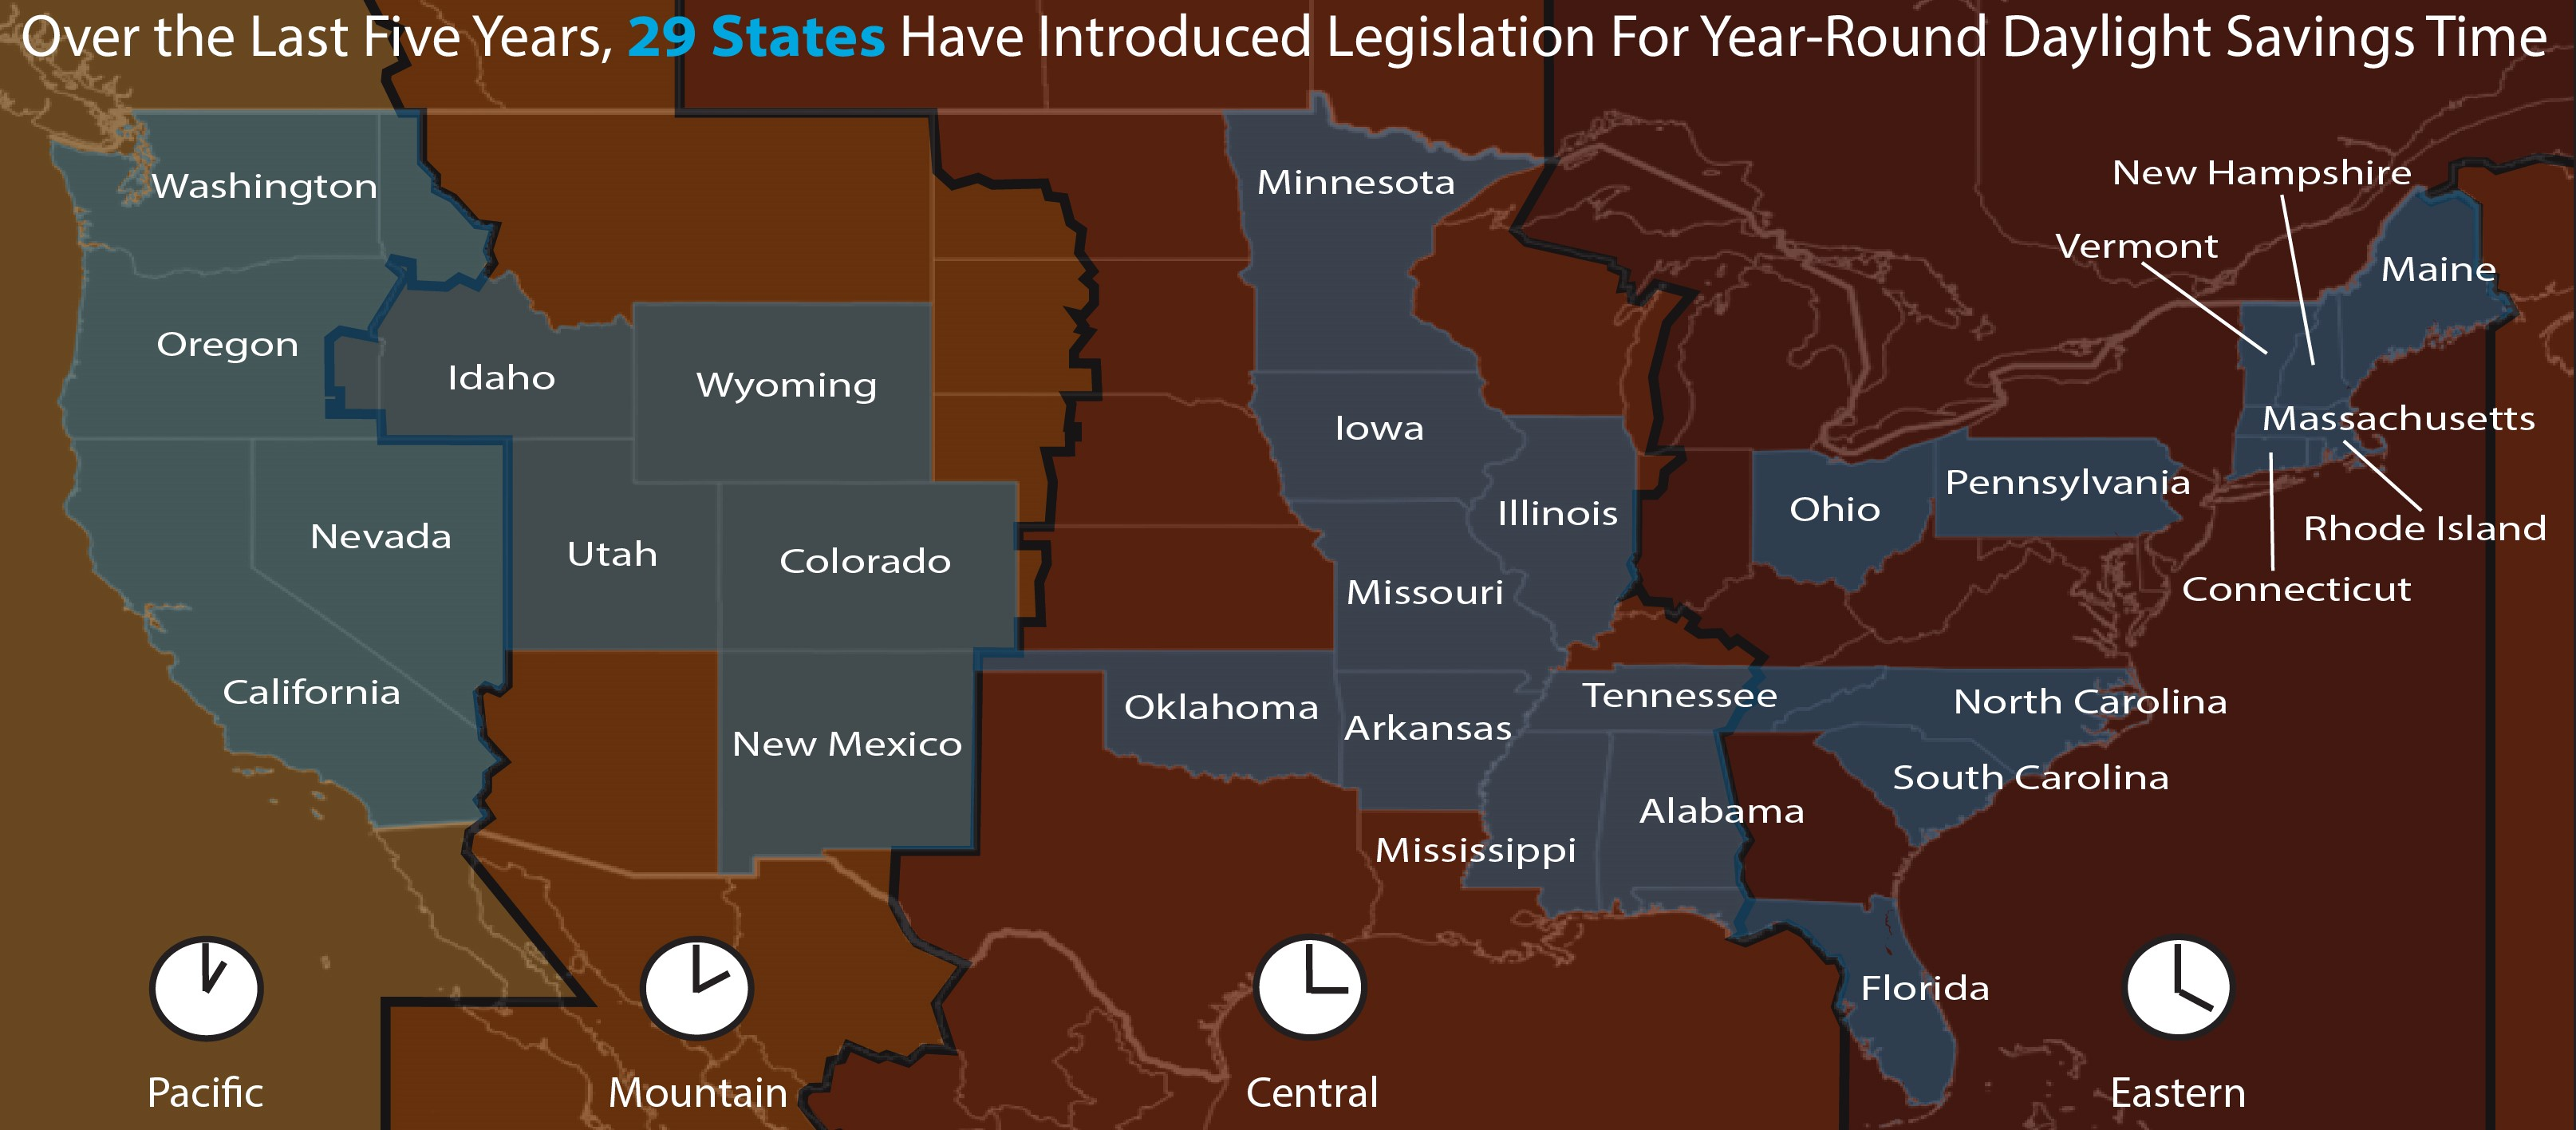 Map image showing U.S. states with proposed legislation for year-round daylight saving time